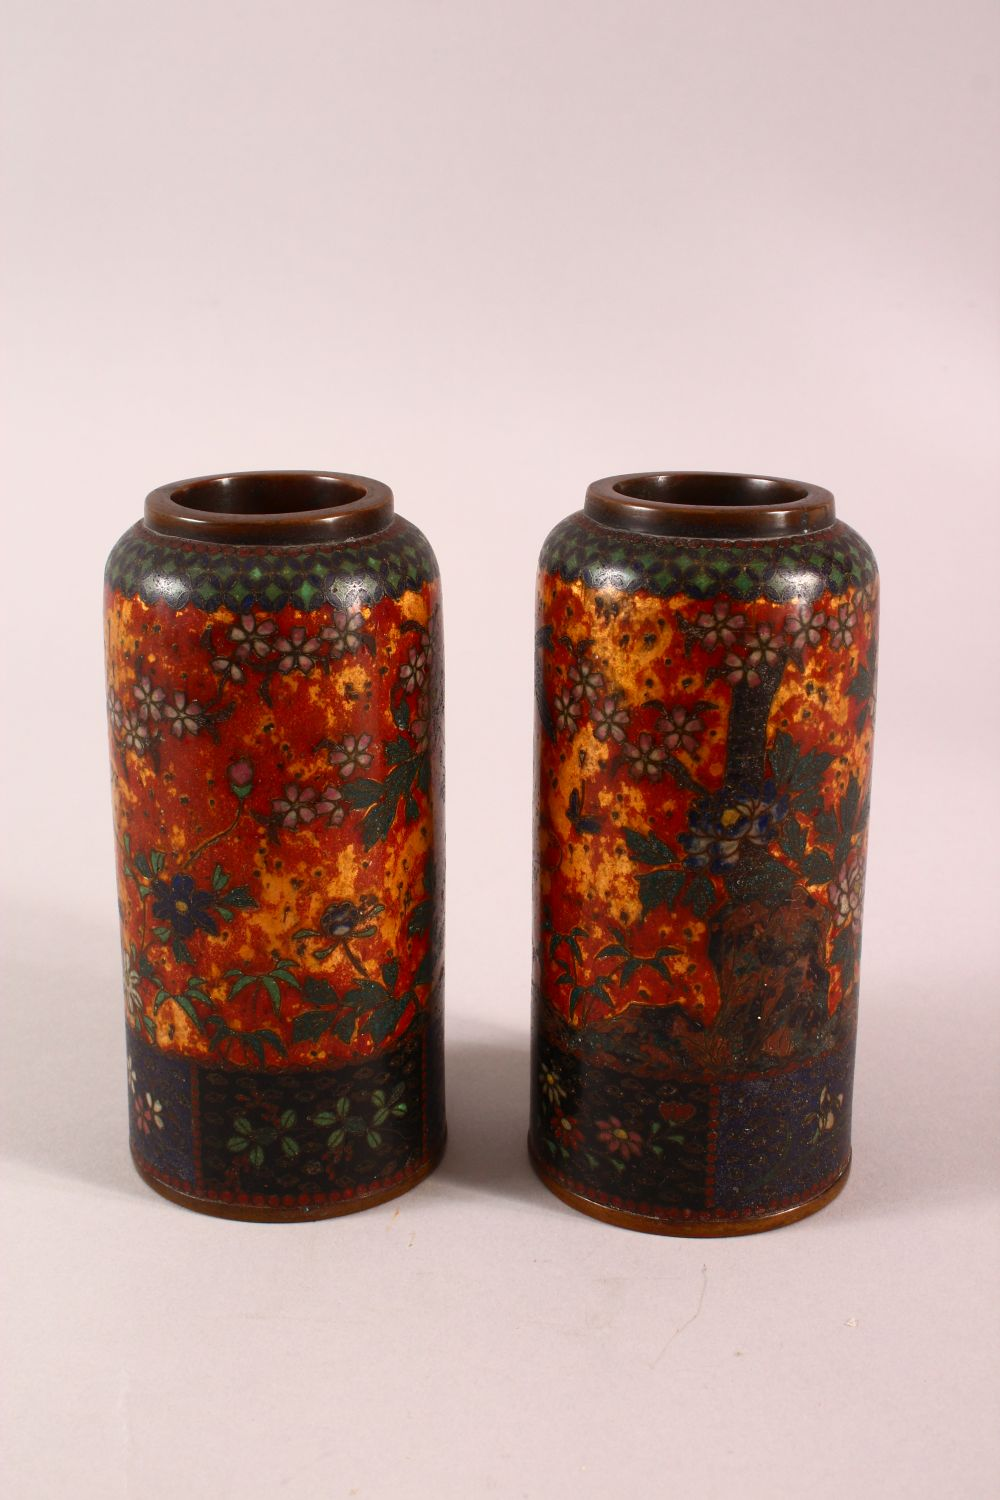 A PAIR OF JAPANESE CLOISONNE VASES OF CYLINDRICAL FORM, gold ground, 15cm high. - Image 4 of 5